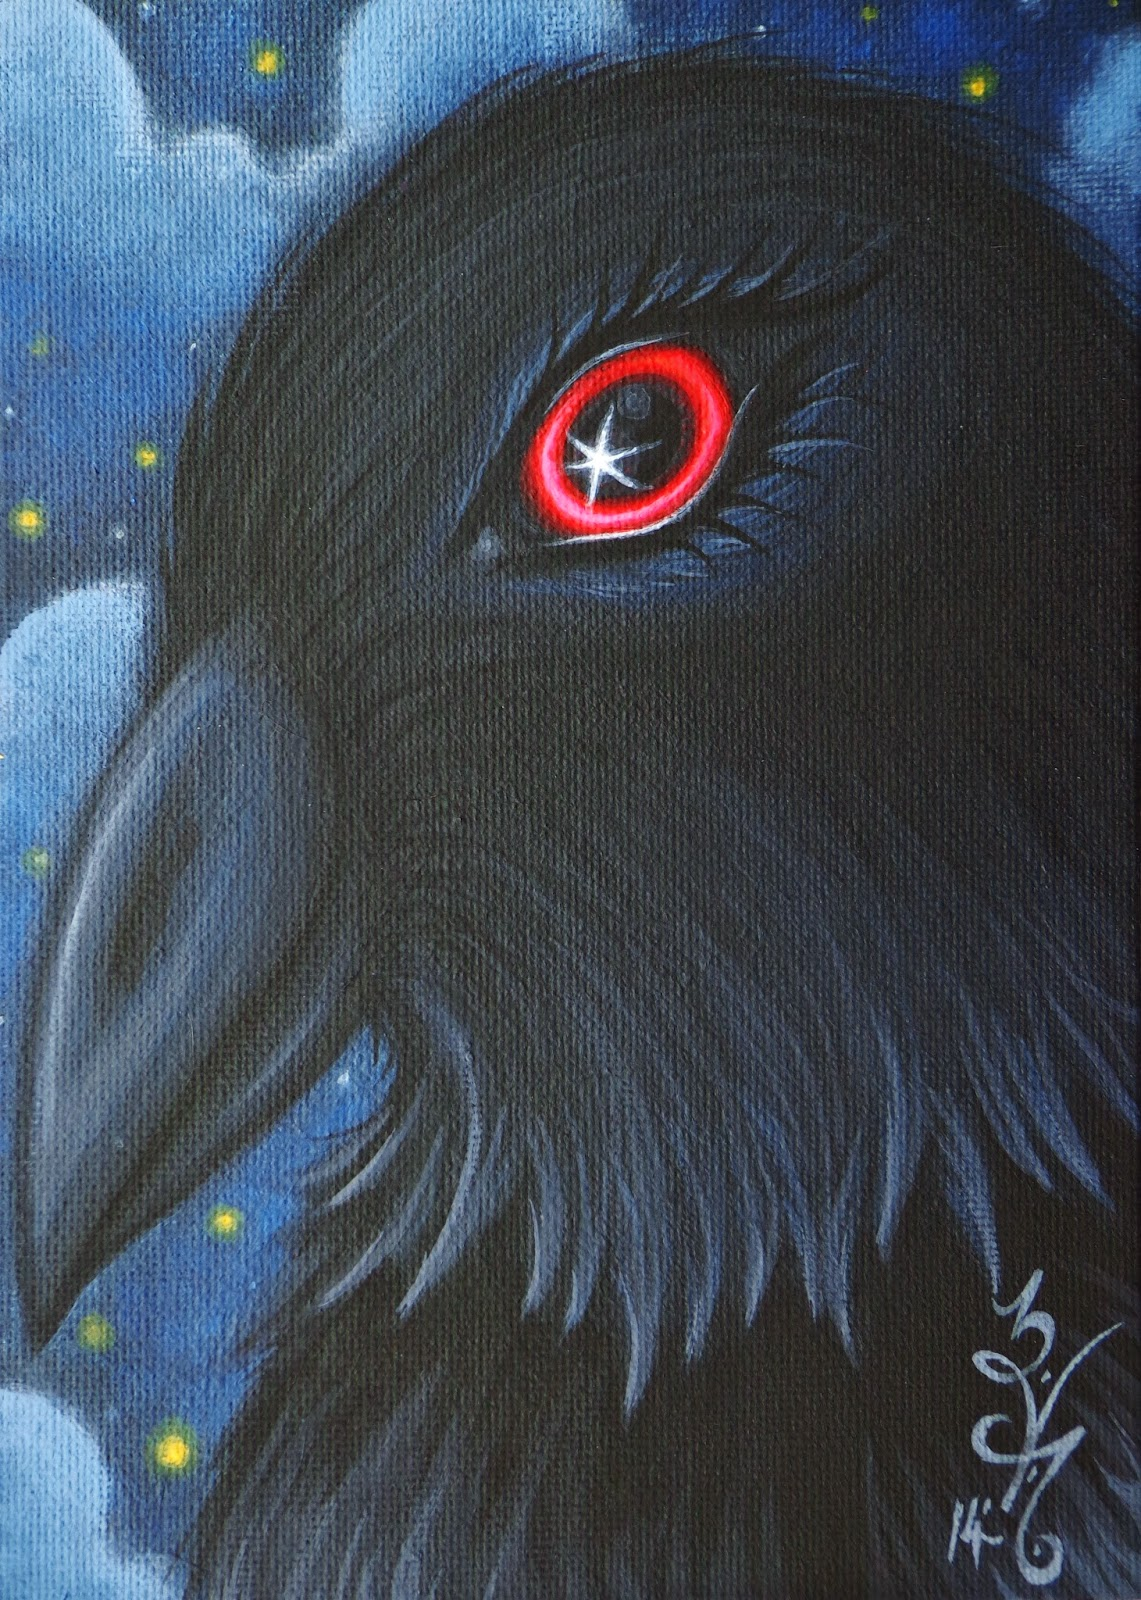 https://www.etsy.com/listing/179892413/original-gothic-fantasy-lowbrow-raven?ref=shop_home_active_4